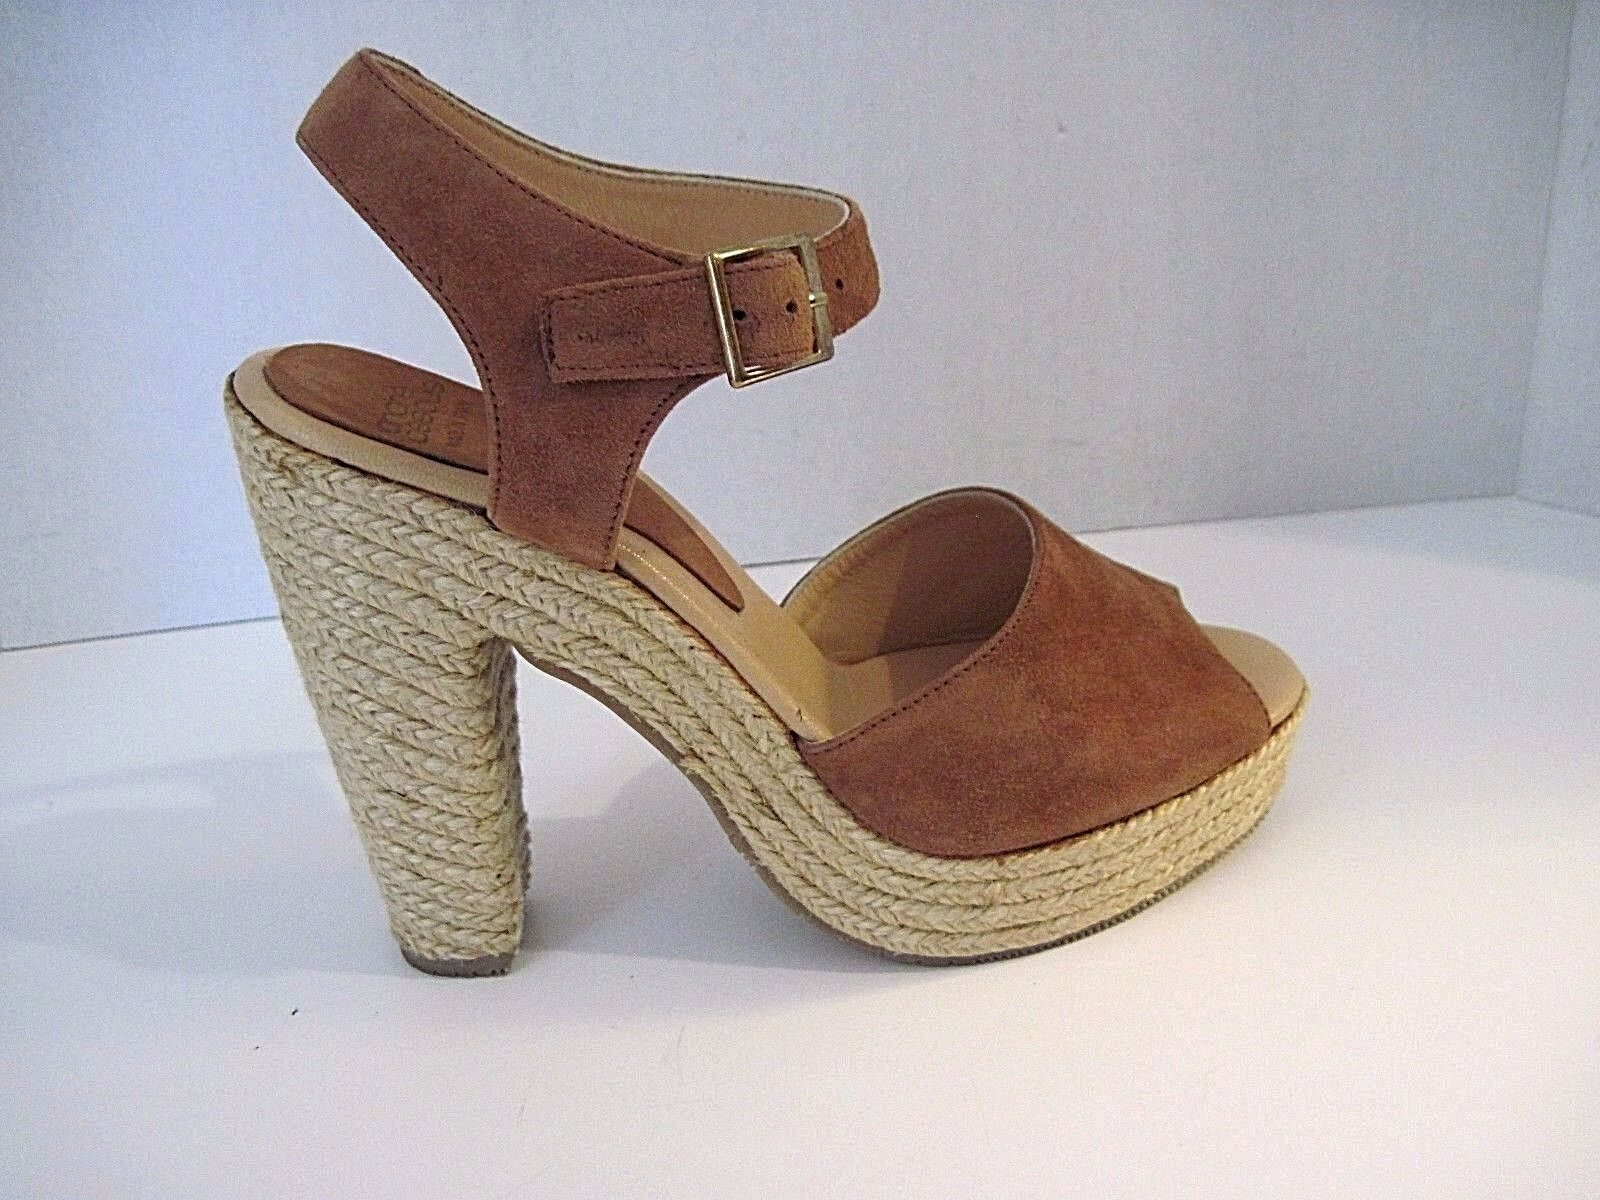 ANDRE ASSOUS SASHA Suede Braun Suede SASHA Rope Heels Größe 40, Made In Spain, SOLD OUT edbe49